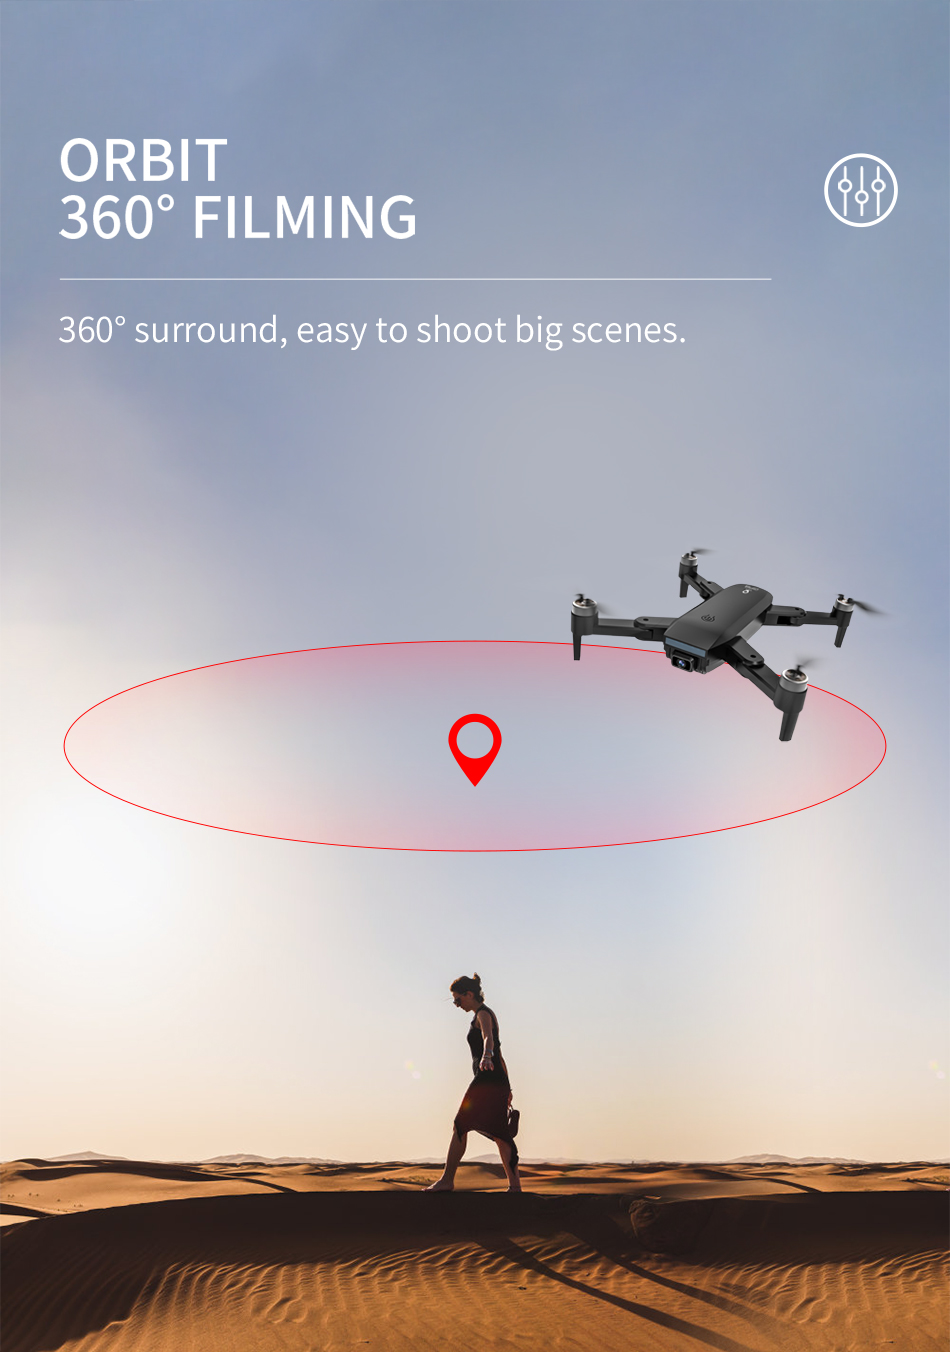 H4e38e280d82c40a7804054a9536d08ceZ - ZLL SG700 MAX Drone GPS 5G WiFi Dual Camera Brushless Motor Flight RC Distance 800m SG700 Pro Foldable Professional Quadcopter